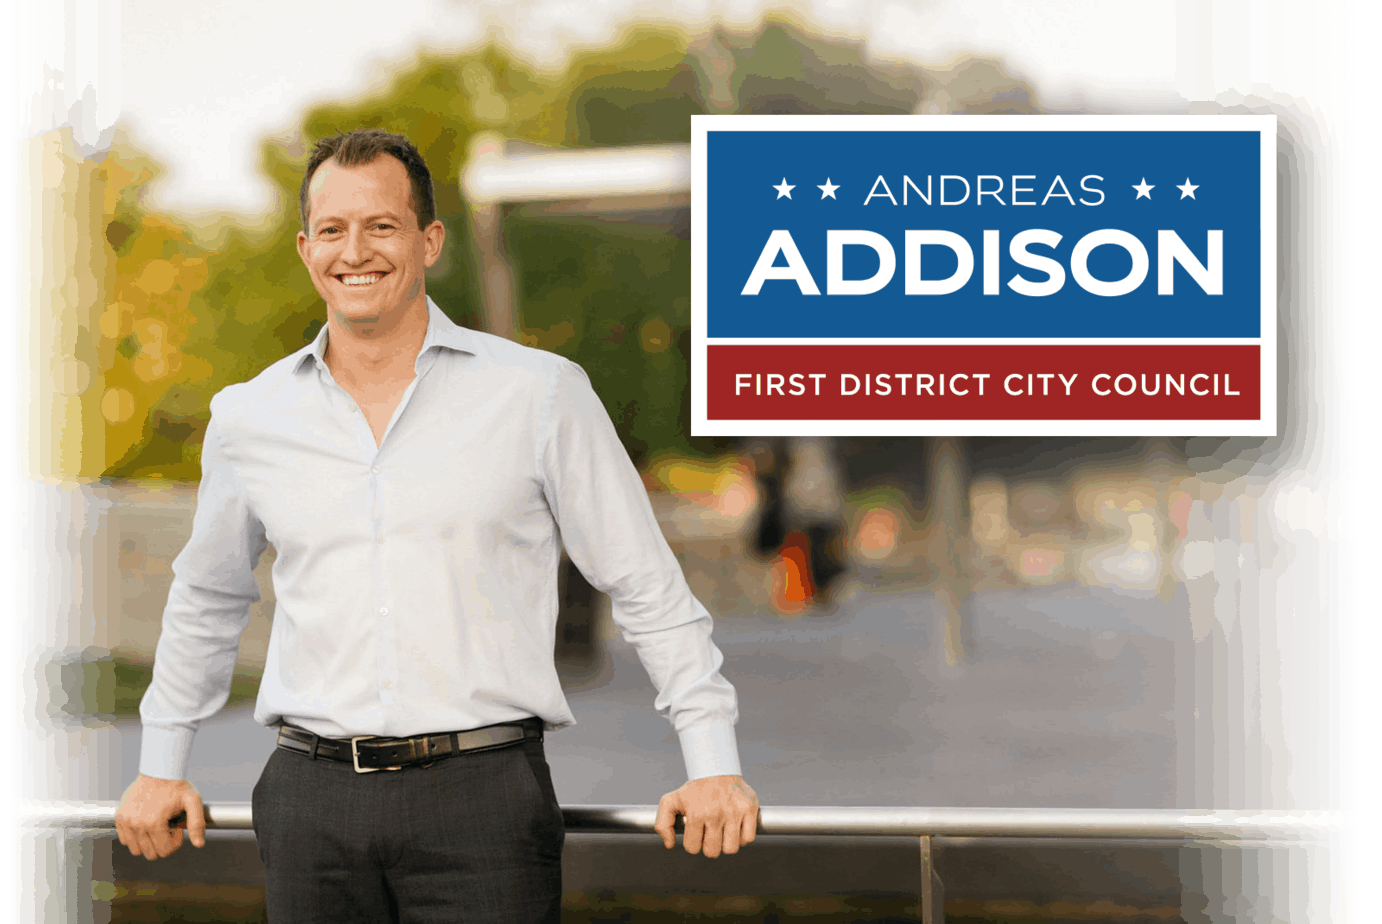 Andreas Addison for 1st District City Council, Richmond, VA